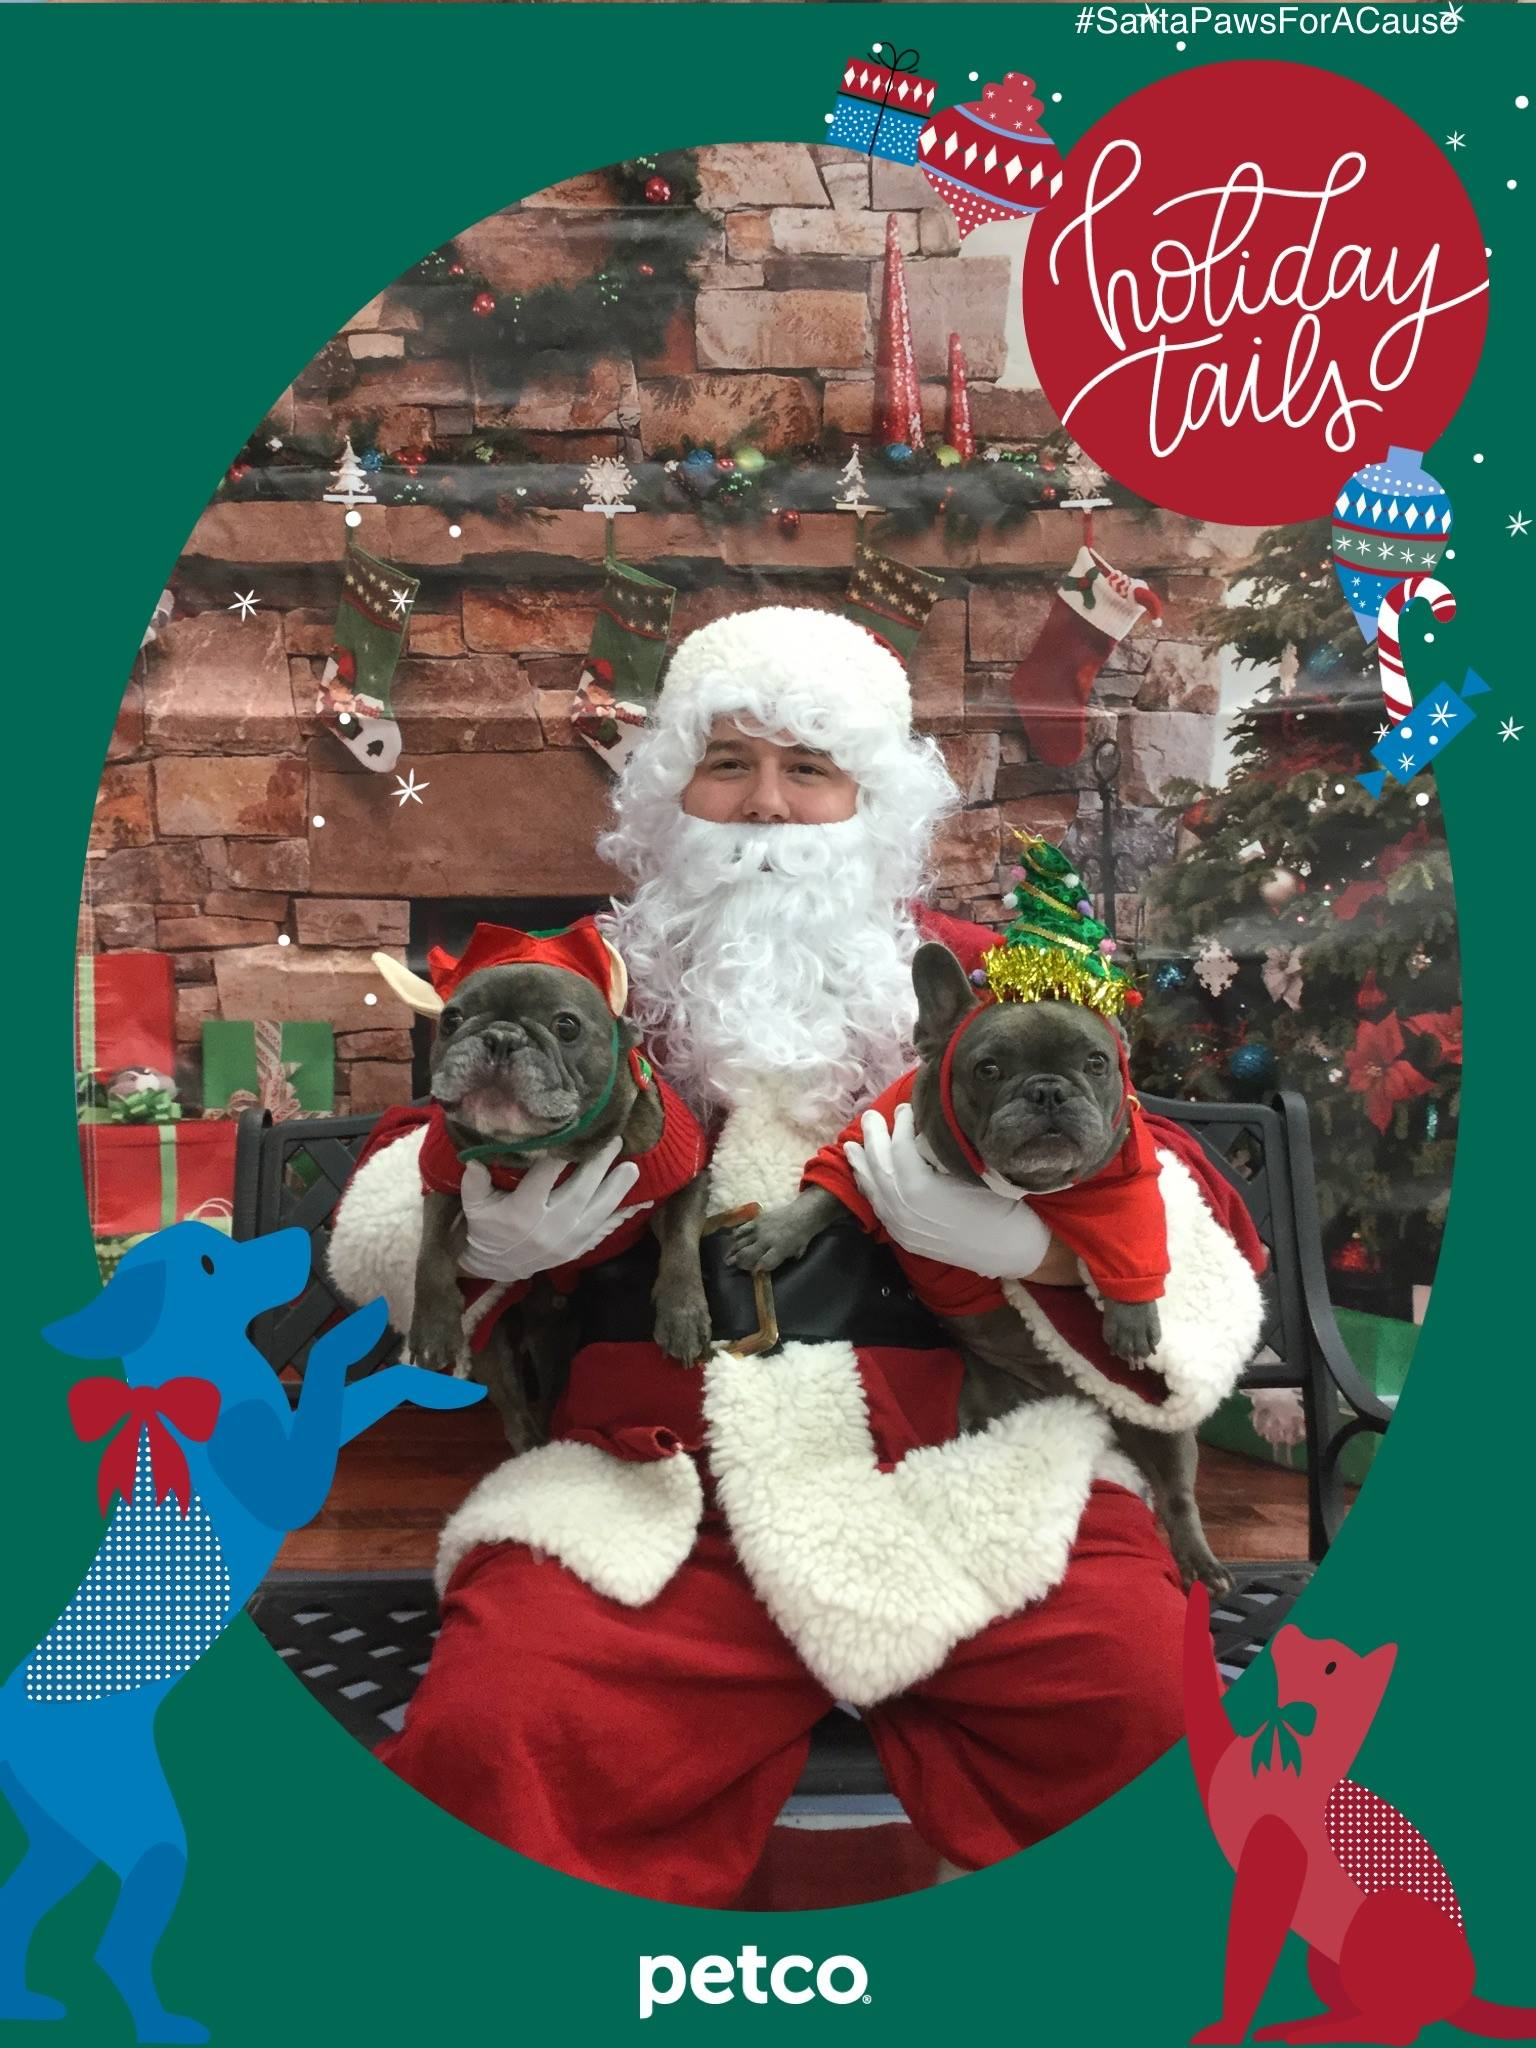 Two dogs in elf costumes for a picture with Santa